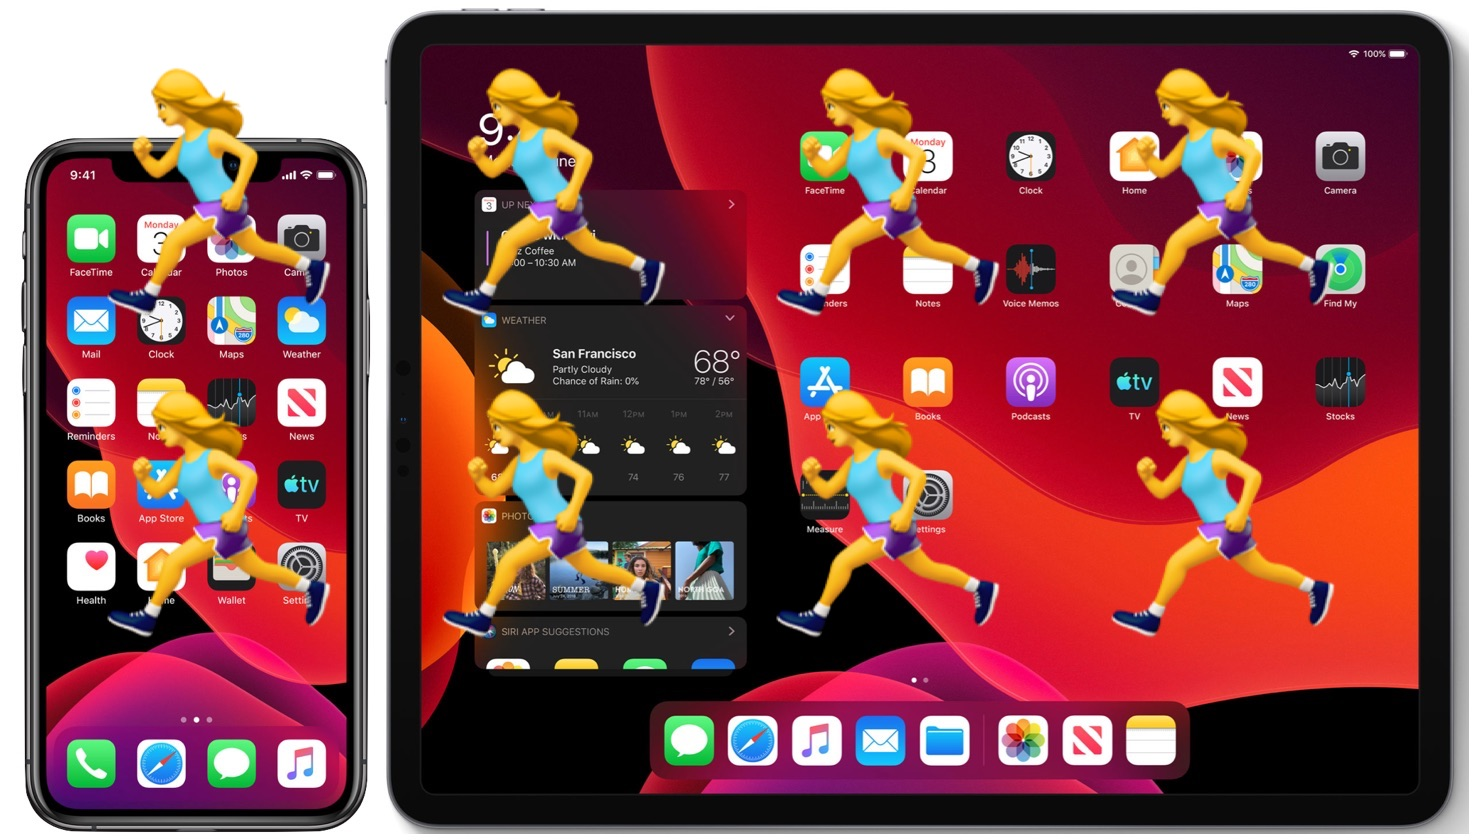 iOS 13 Slow? Tips to Speed Up iPhone & iPad with iPadOS & iOS 13